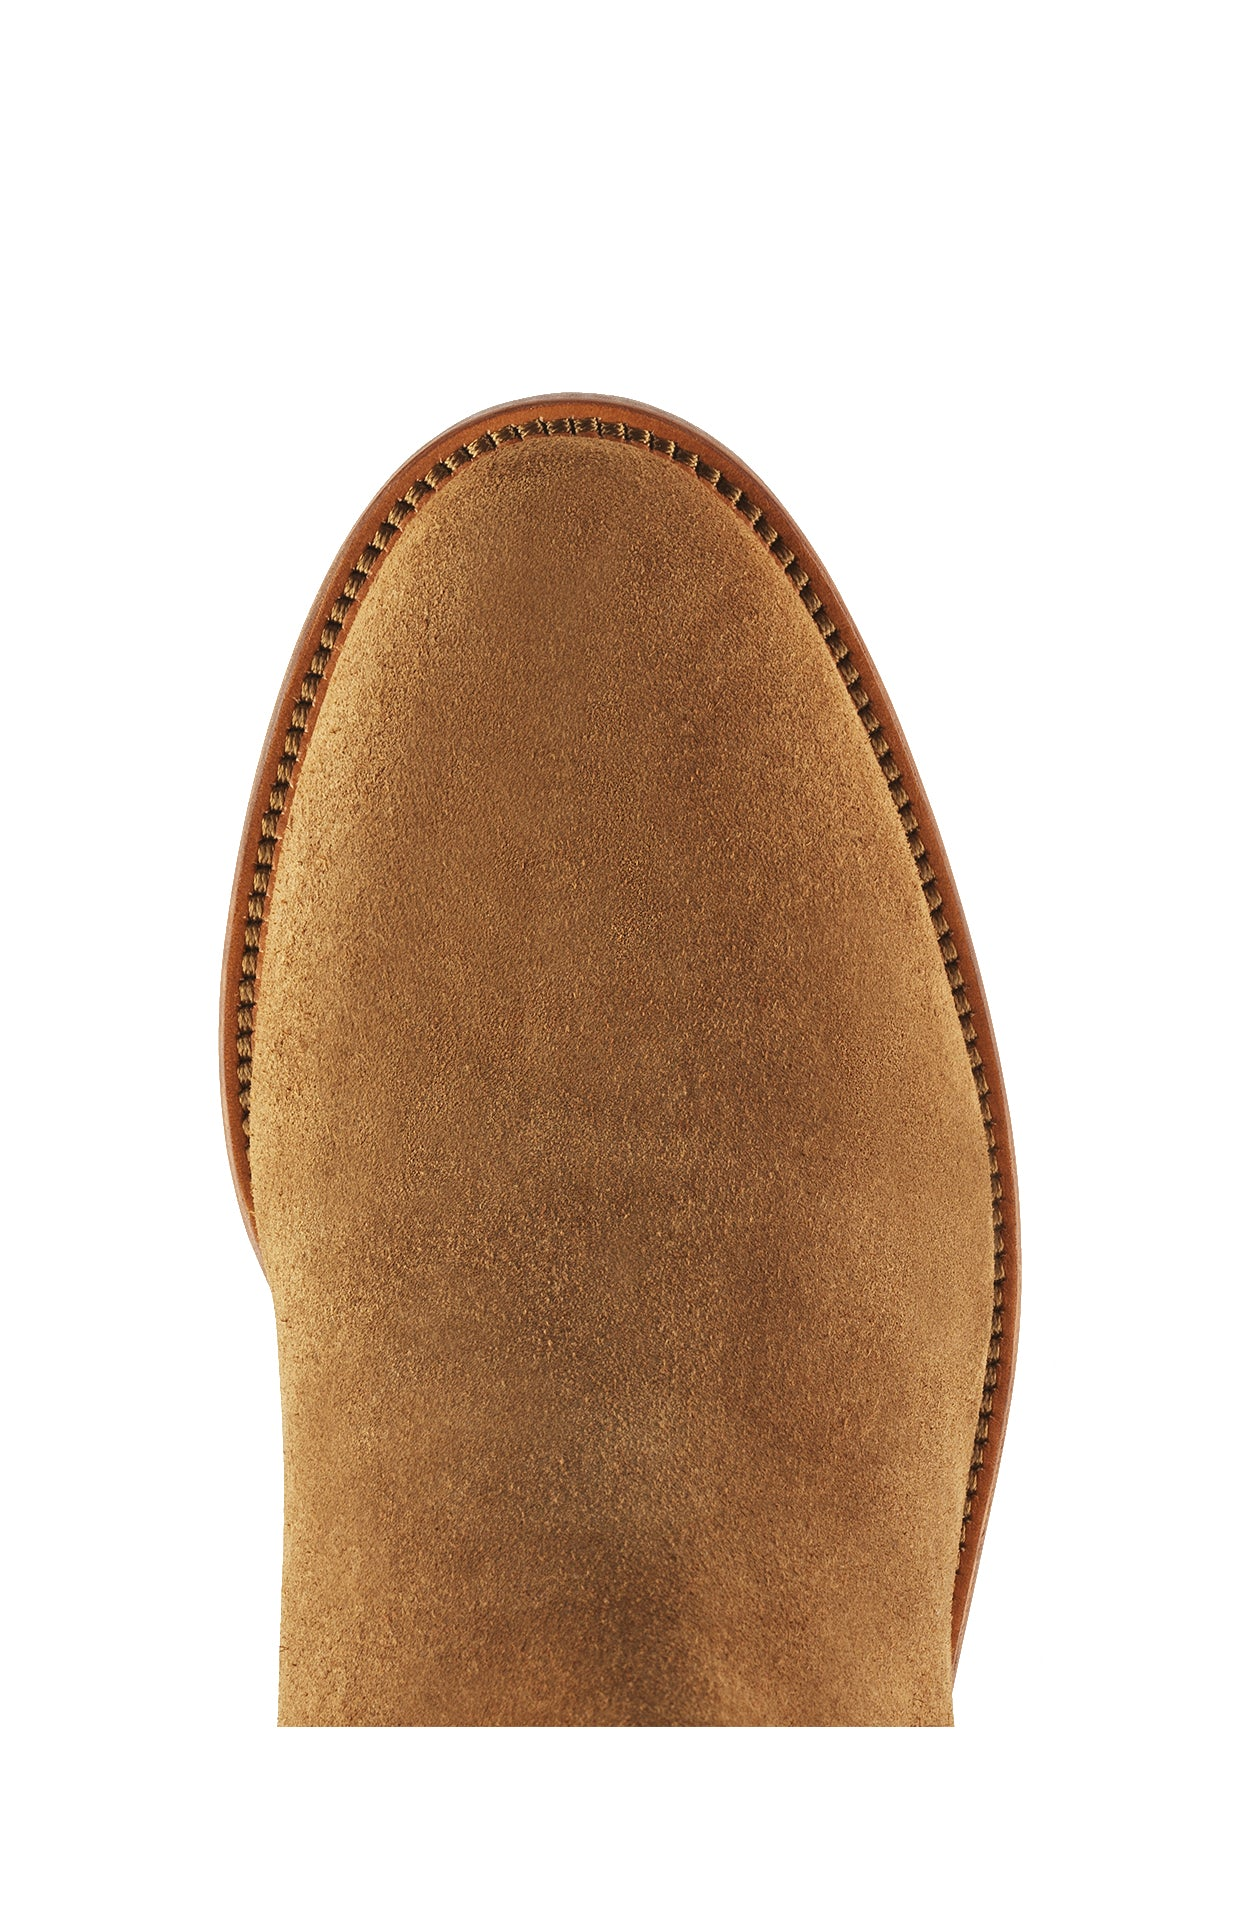 Fairfax and Favor Regina Flat Boots for Ladies in Tan Suede